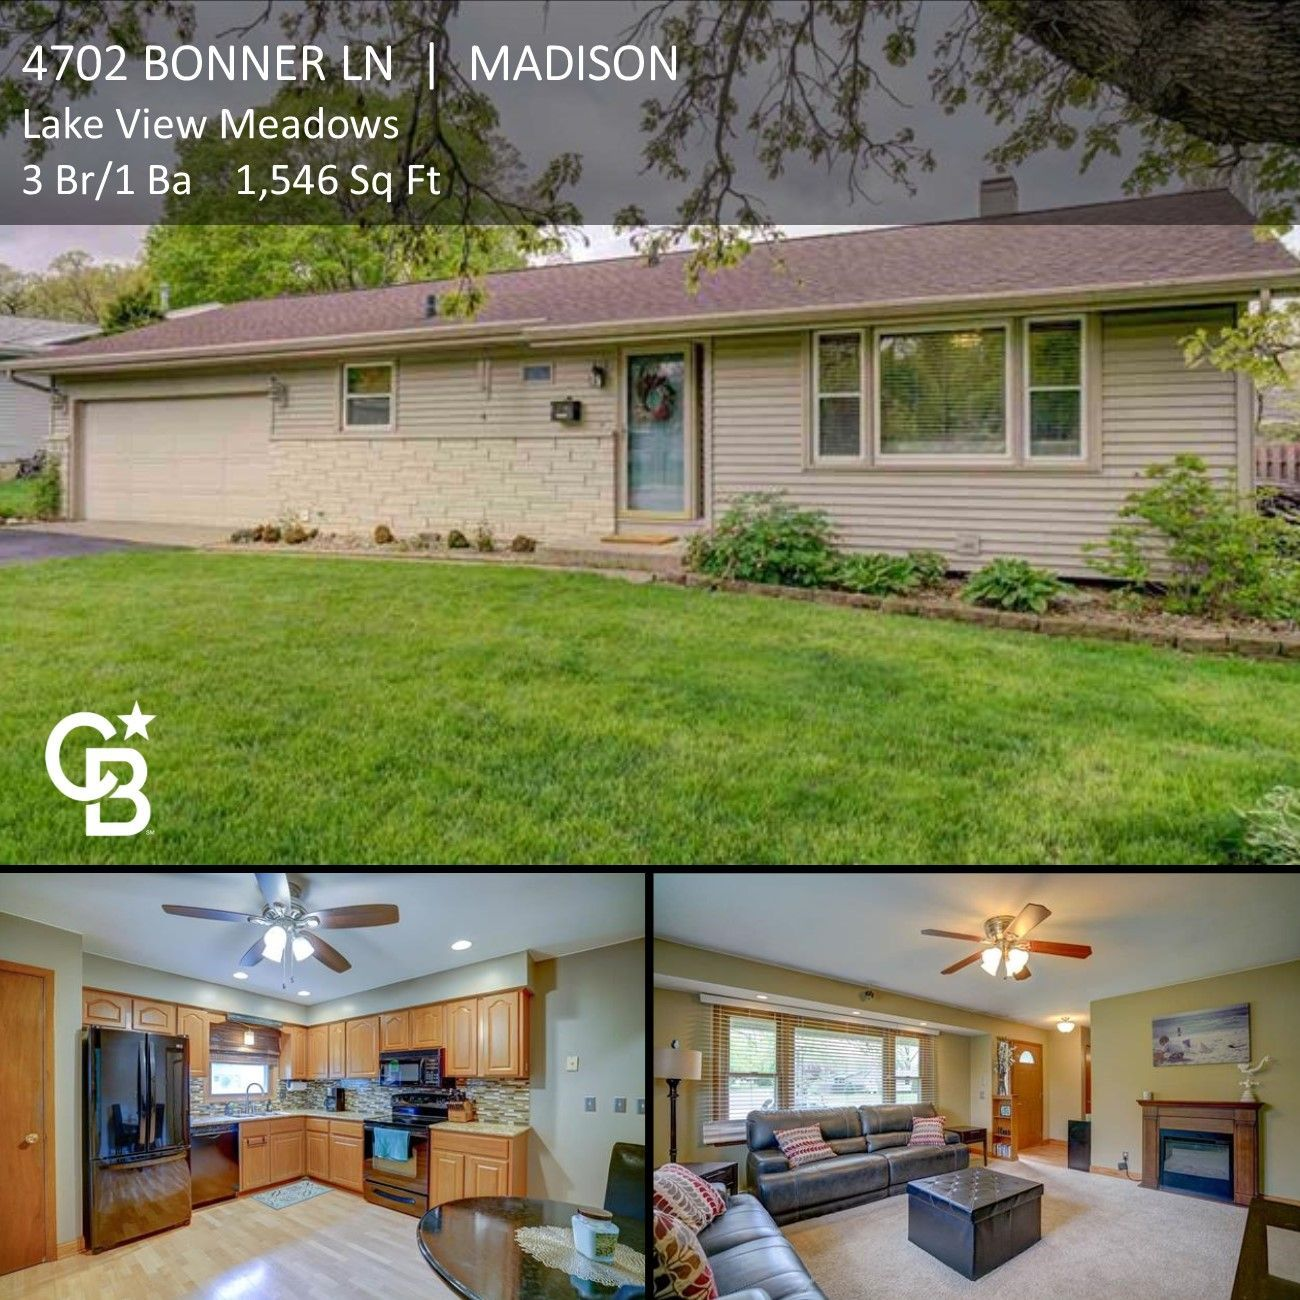 Madison Wi Lake View Meadows 3 Br 1 Ba Experience Madison S Northside Beautifully Maintained Ranch St Ranch Style Fenced In Yard Condos For Sale